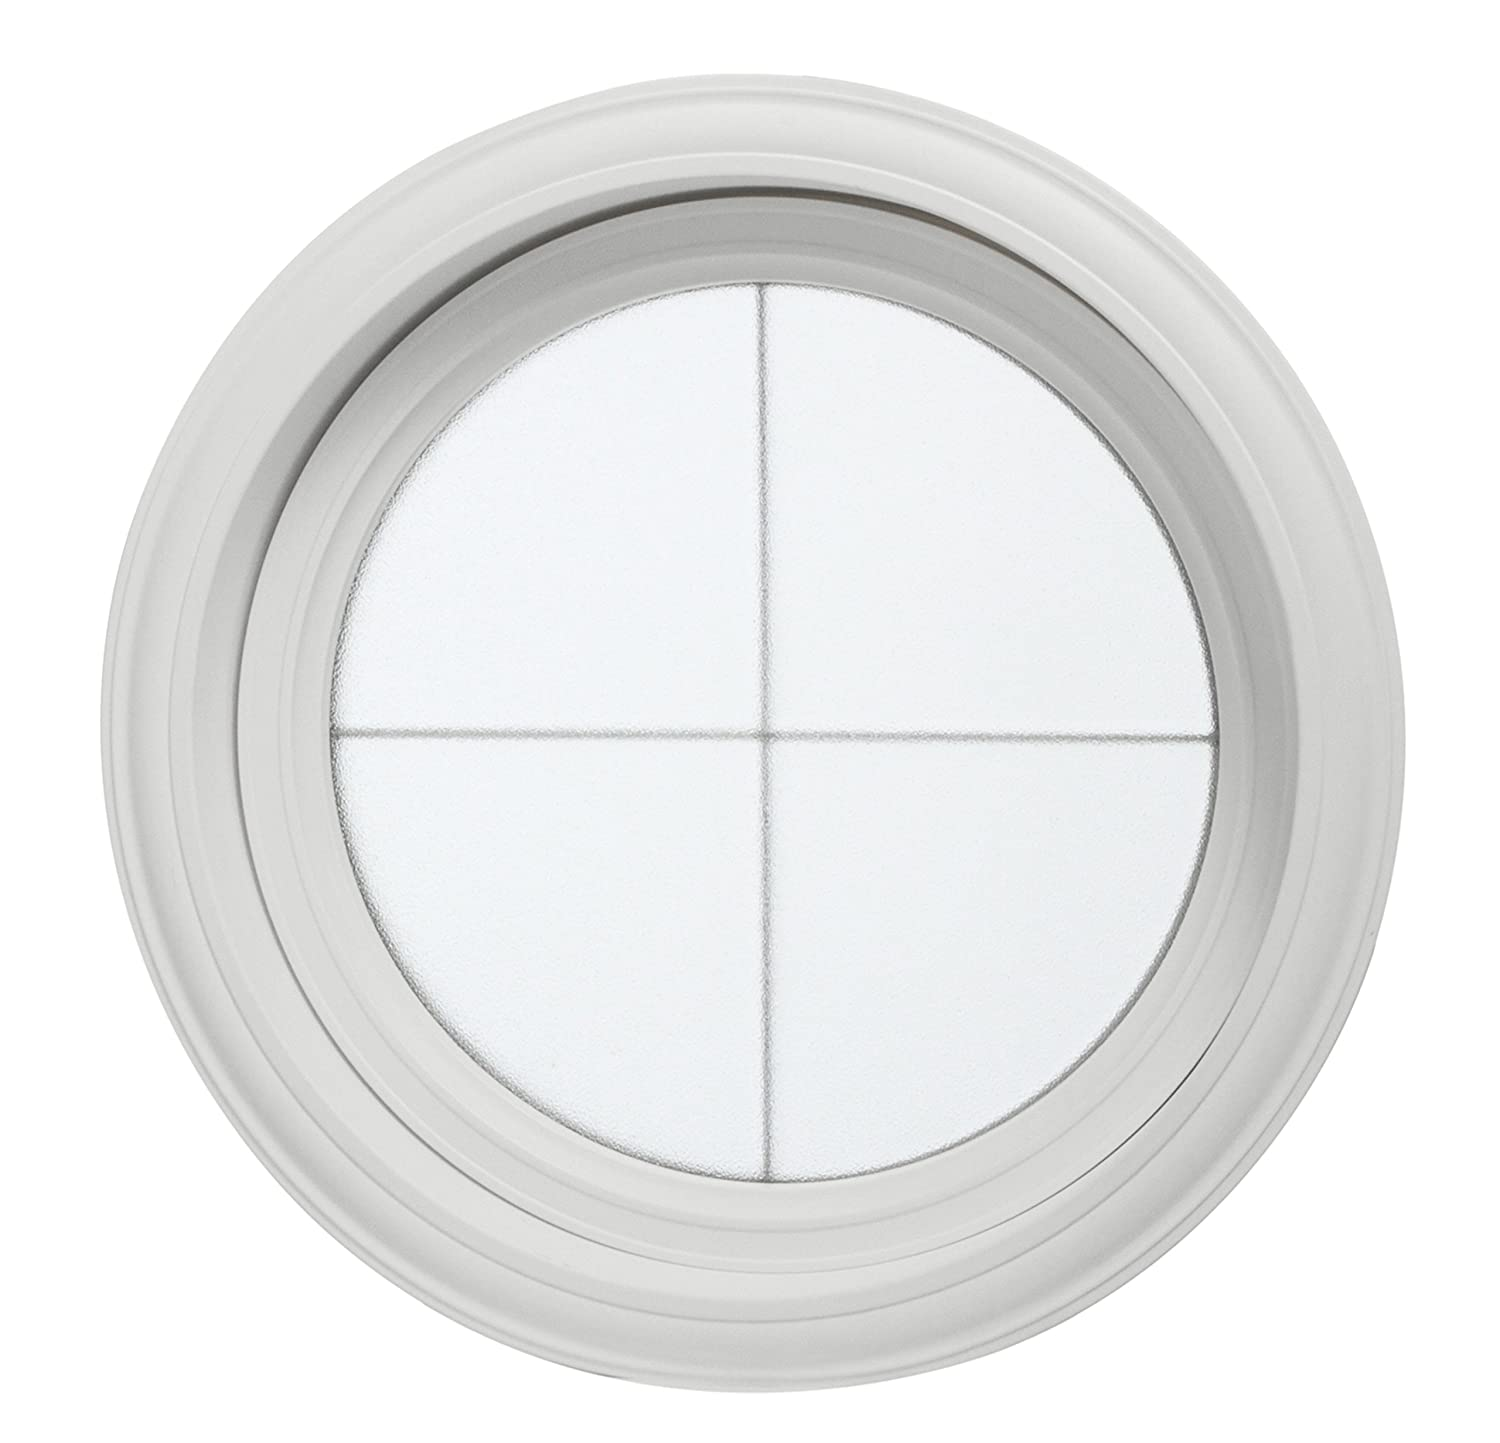 Park Ridge Vinyl Round Fixed Window with Platinum Cross & Obscure Glass, 24.5' x 24.5'